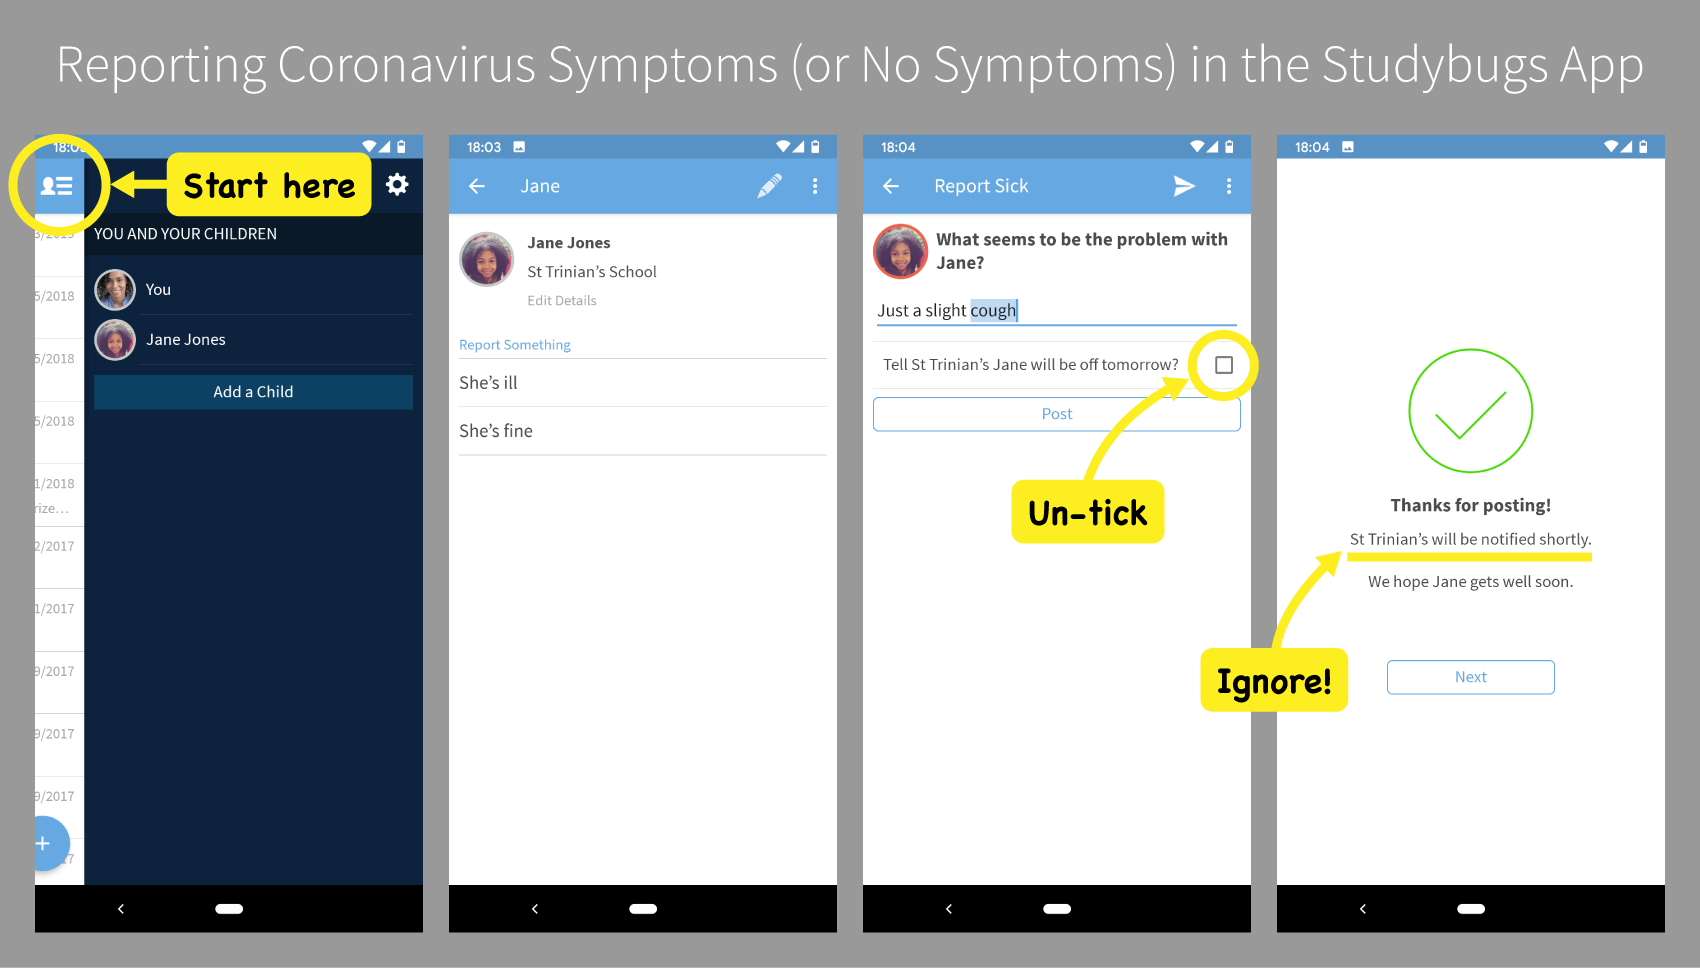 Reporting coronavirus symptoms in the Studybugs app